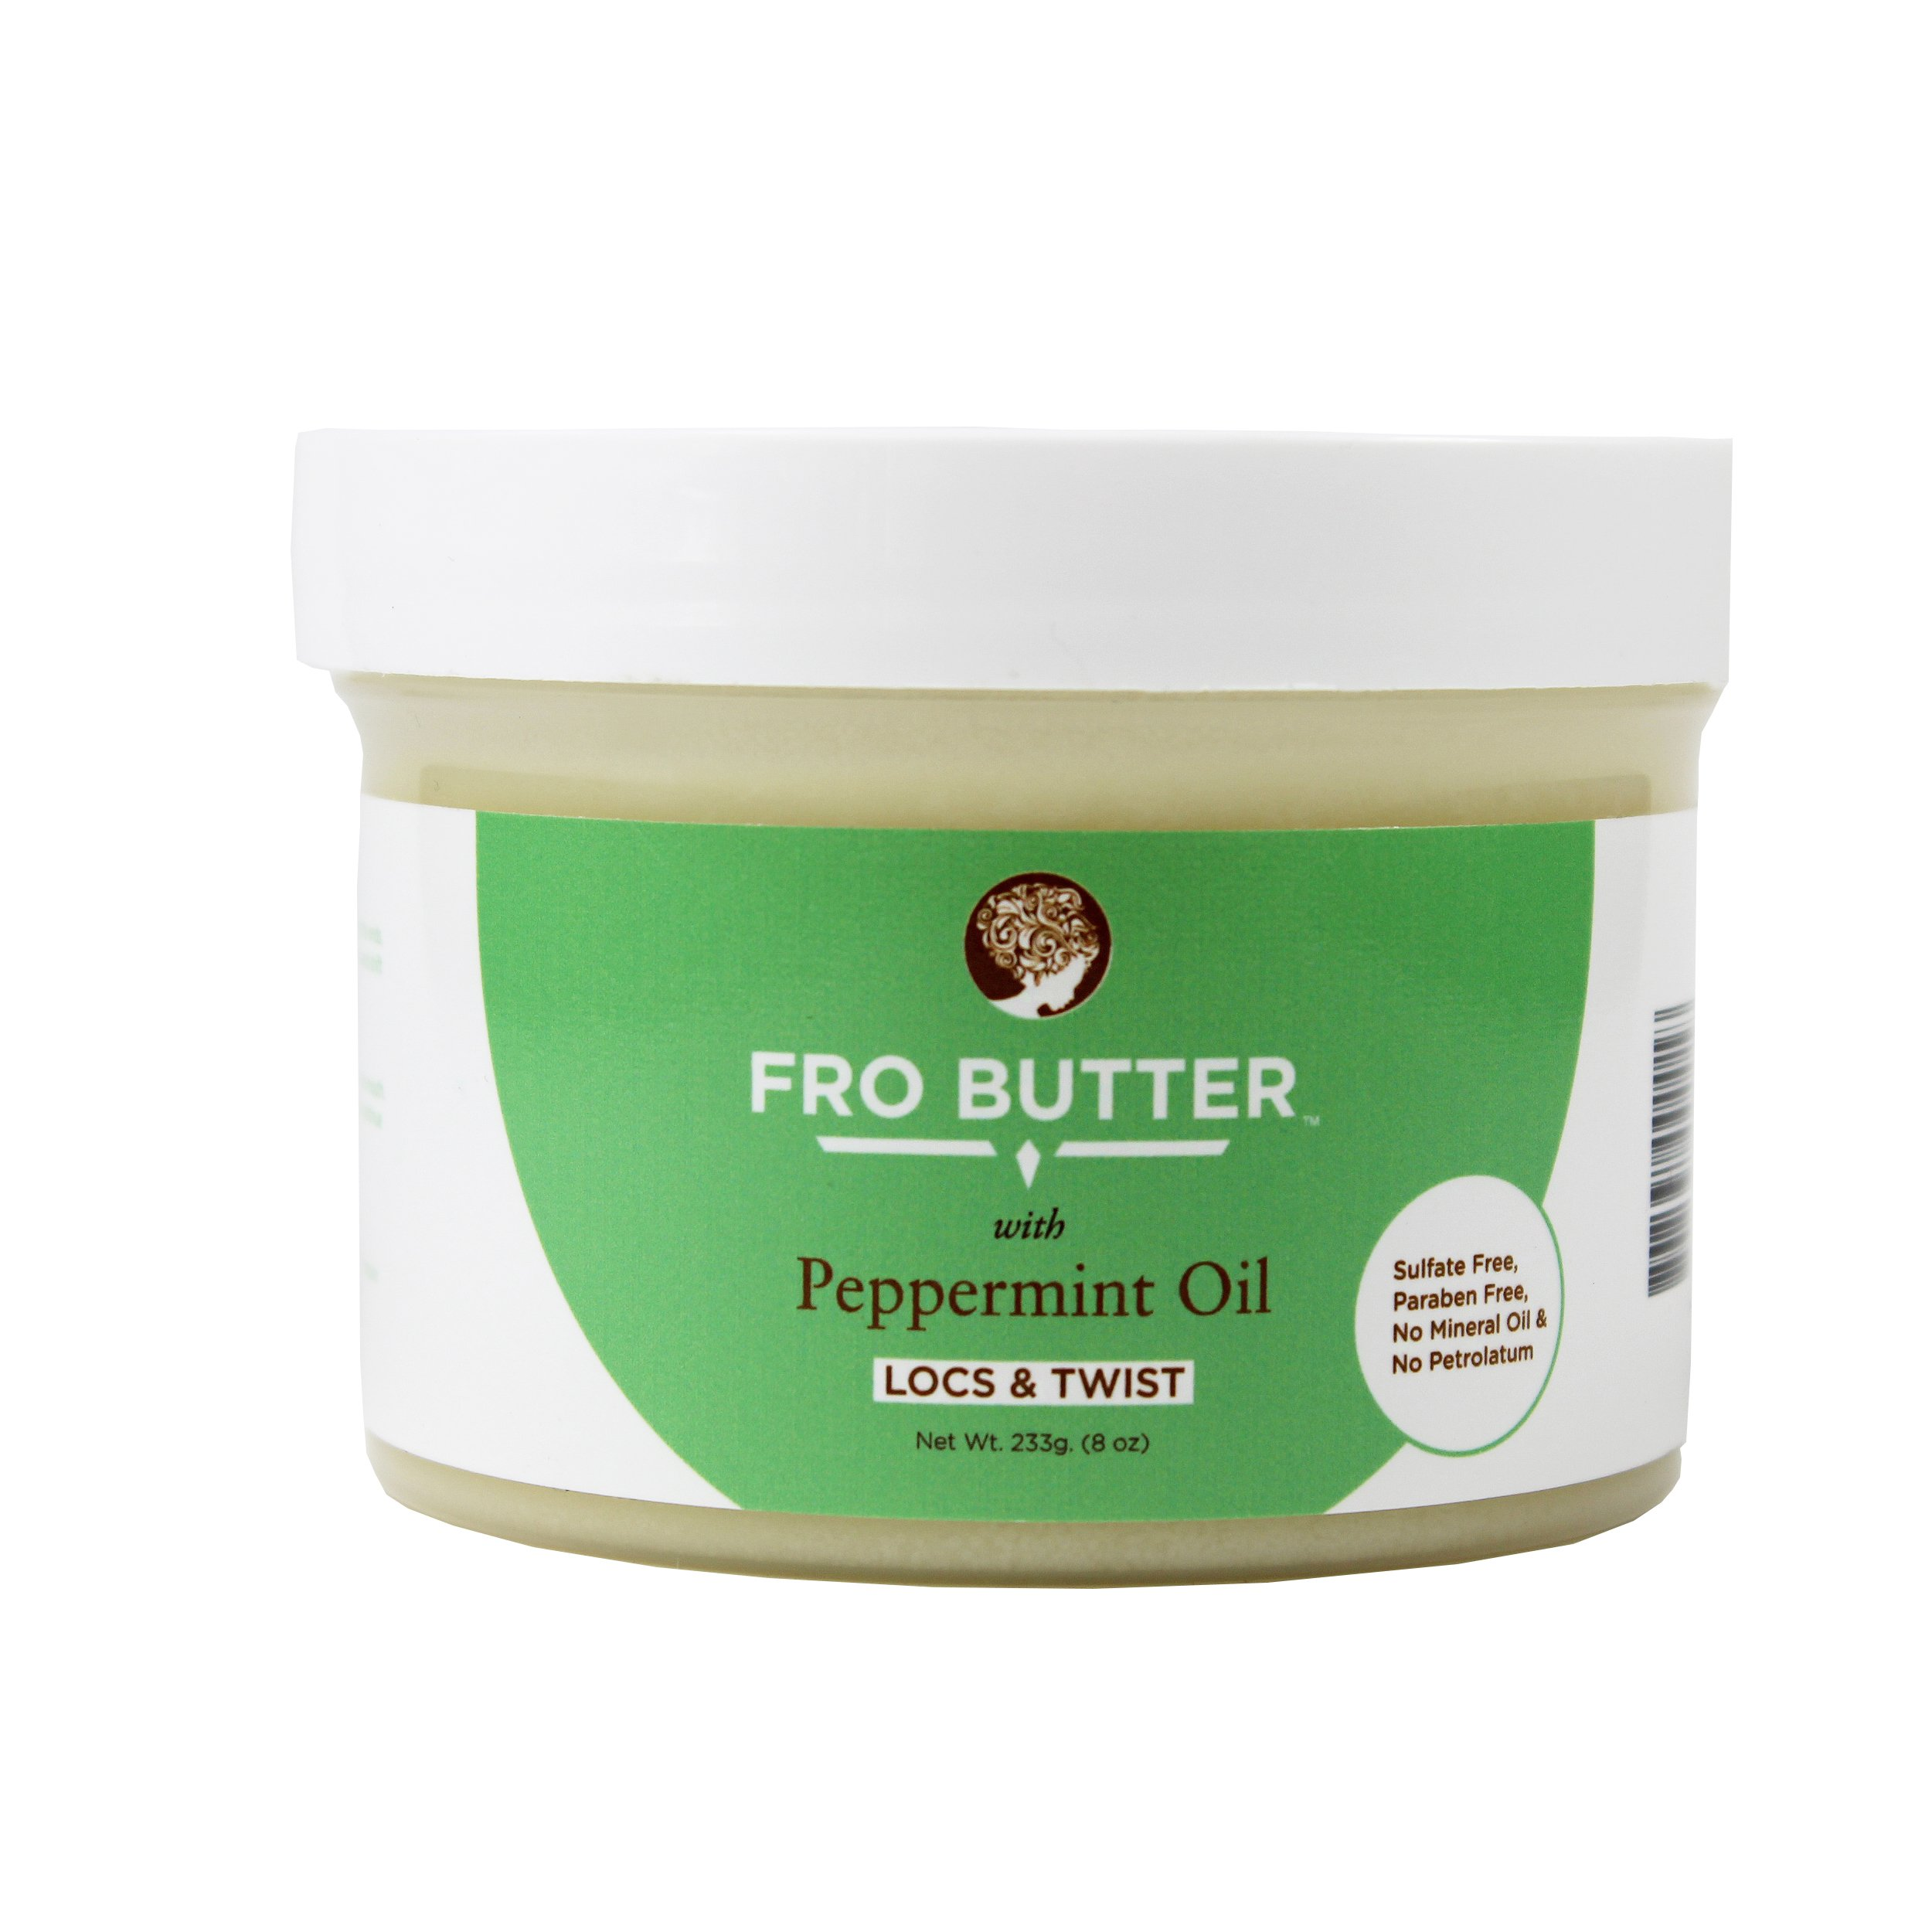 Fro Butter with Peppermint Oil Hair Treatment | Peppermint Oil, Shea Butter, Virgin Coconut & Lavender Oil, Pumpkin Seeds & Nourishing Extracts | For Dry & Itchy Scalp, Coarse & Dry Hair, Men & Women